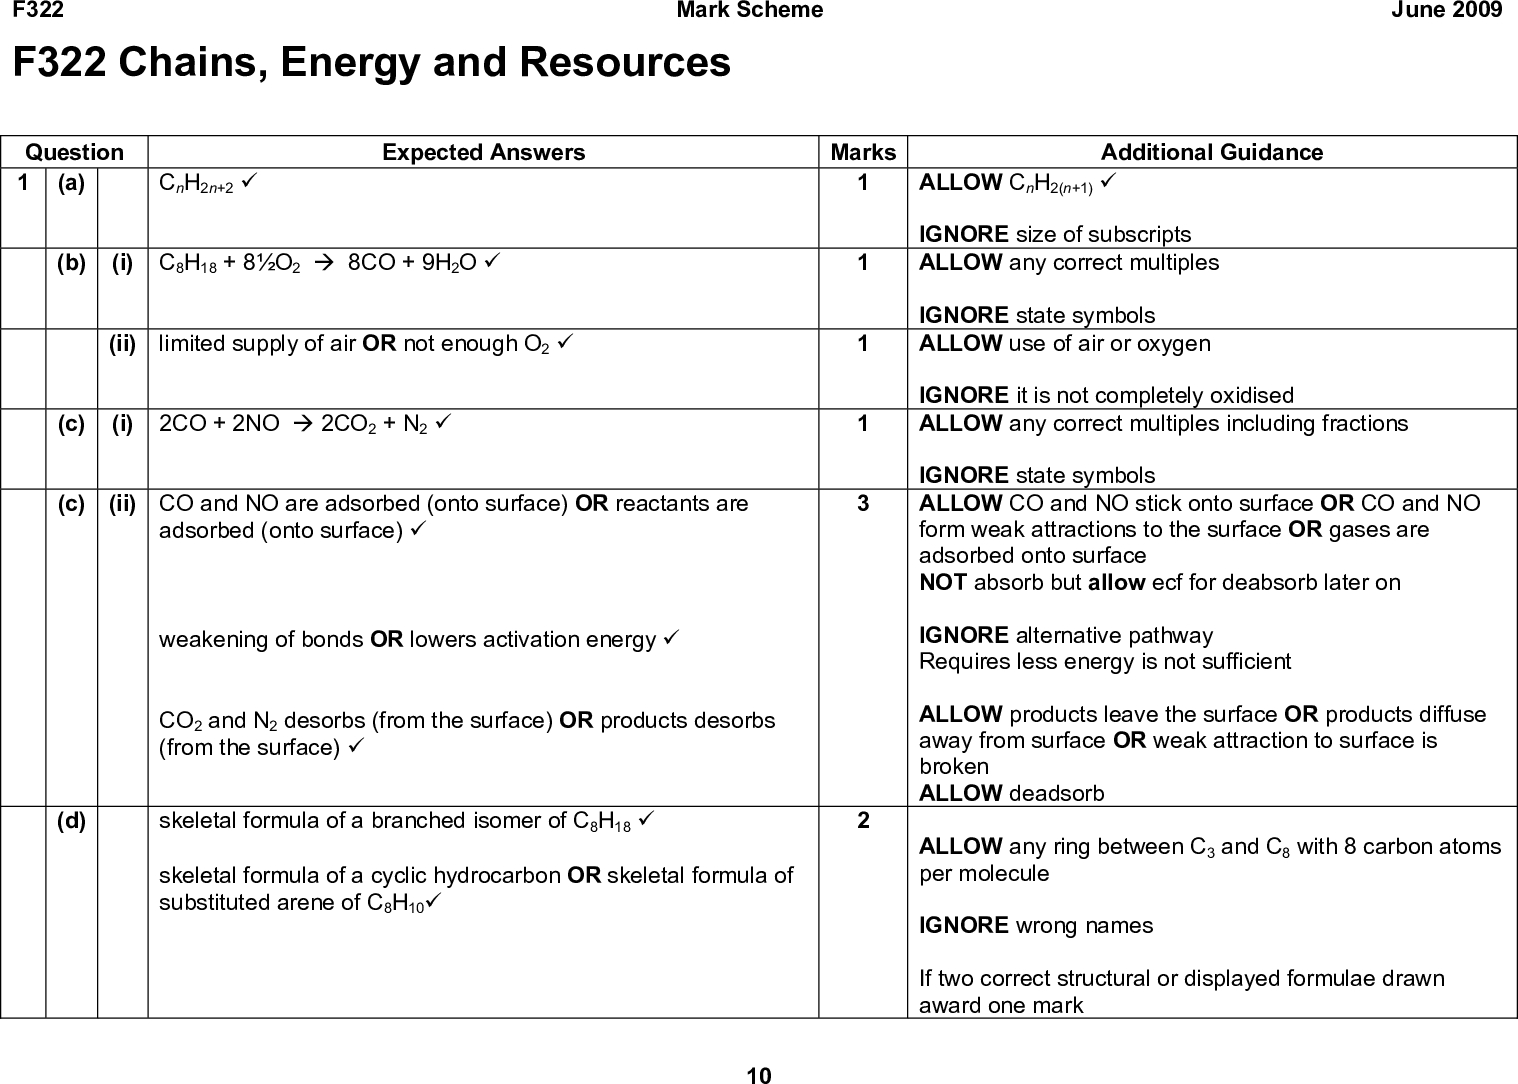 F322 F322 Chains, Energy and Resources Mark Scheme June 2009 Question 1 (a) CnH2n+2 (cid:57) Expected Answers Marks (b) (i) C8H18 + 8O2 (cid:198) 8CO + 9H2O (cid:57) (ii) limited supply of air OR not enough O2 (cid:57) (c) (i) 2CO + 2NO (cid:198) 2CO2 + N2 (cid:57) (c) (ii) CO and NO are adsorbed (onto surface) OR reactants are adsorbed (onto surface) (cid:57) weakening of bonds OR lowers activation energy (cid:57) CO2 and N2 desorbs (from the surface) OR products desorbs (from the surface) (cid:57) (d) skeletal formula of a branched isomer of C8H18 (cid:57) skeletal formula of a cyclic hydrocarbon OR skeletal formula of substituted arene of C8H10(cid:57) 10 Additional Guidance ALLOW CnH2(n+1) (cid:57) IGNORE size of subscripts ALLOW any correct multiples IGNORE state symbols ALLOW use of air or oxygen IGNORE it is not completely oxidised ALLOW any correct multiples including fractions IGNORE state symbols ALLOW CO and NO stick onto surface OR CO and NO form weak attractions to the surface OR gases are adsorbed onto surface NOT absorb but allow ecf for deabsorb later on IGNORE alternative pathway Requires less energy is not sufficient ALLOW products leave the surface OR products diffuse away from surface OR weak attraction to surface is broken ALLOW deadsorb ALLOW any ring between C3 and C8 with 8 carbon atoms per molecule IGNORE wrong names If two correct structural or displayed formulae drawn award one mark<br />  F322 Question (e) Expected Answers Mark Scheme Marks June 2009 Additional Guidance ALLOW the amount of the gas OR abundance of gas ALLOW how much IR it absorbs OR ability to absorb heat IGNORE global warming potential / heat reflected / how much is produced ALLOW how long it stays in the atmosphere ALLOW piped into disused or partially filled oil wells ALLOW stored as a carbonate OR equation to show formation of suitable carbonate from an oxide IGNORE mineral storage IGNORE reforestation 13 Any TWO from: atmospheric concentration (cid:57) ability to abso